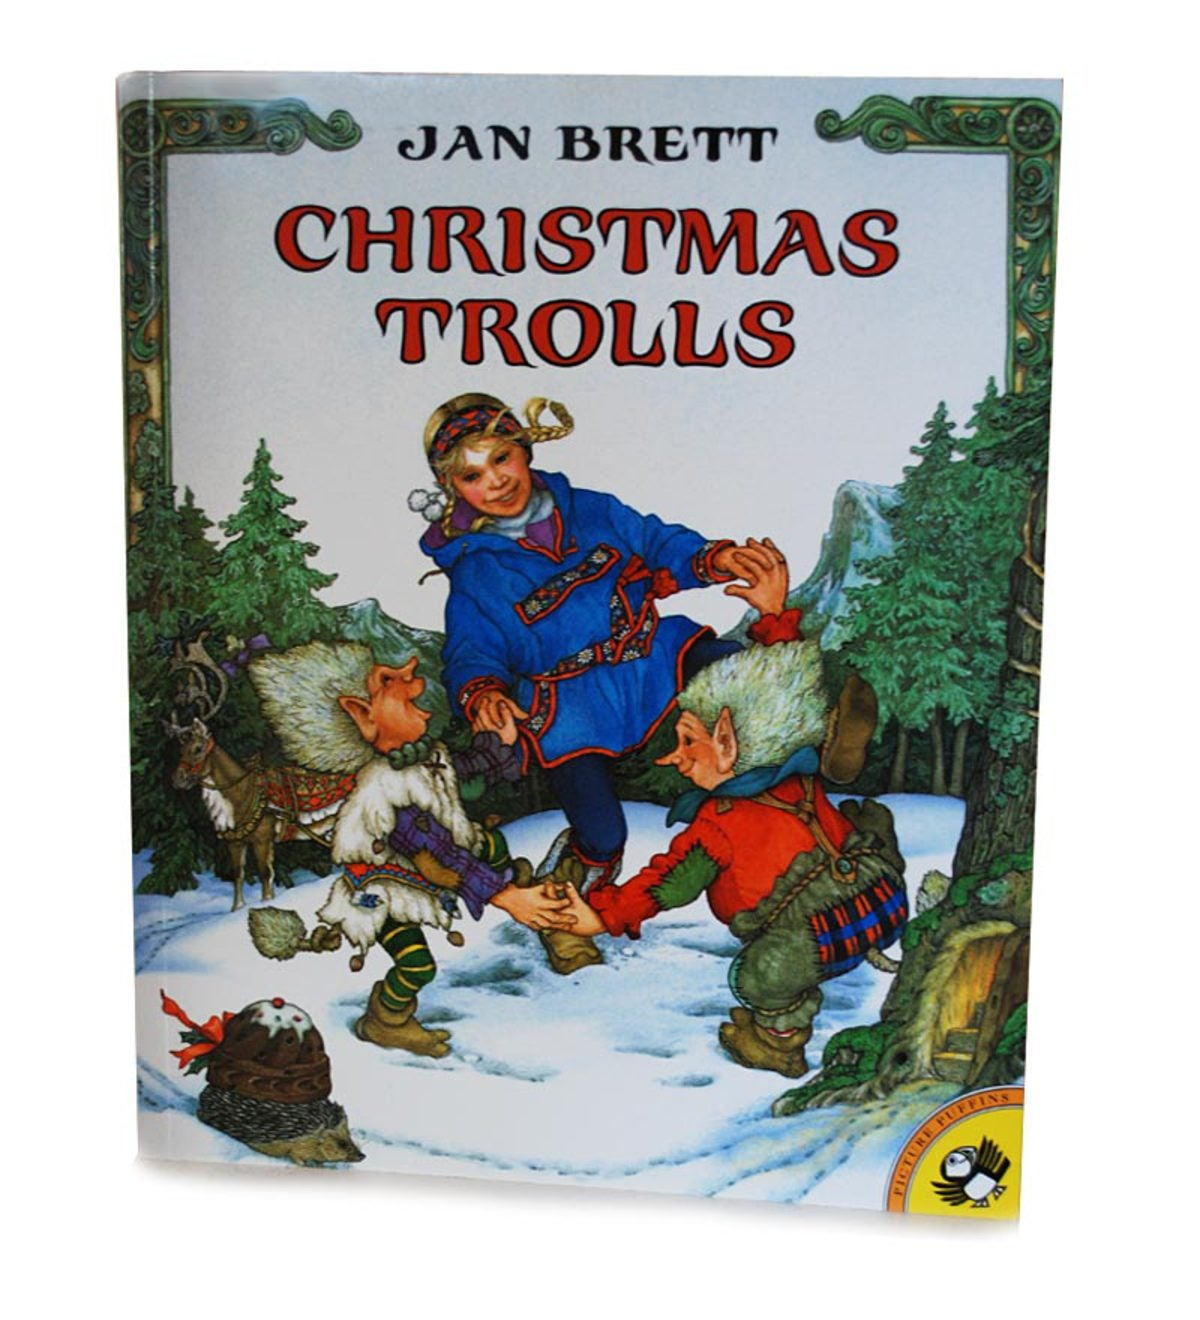 Christmas Trolls Classic Picture Book by Jan Brett